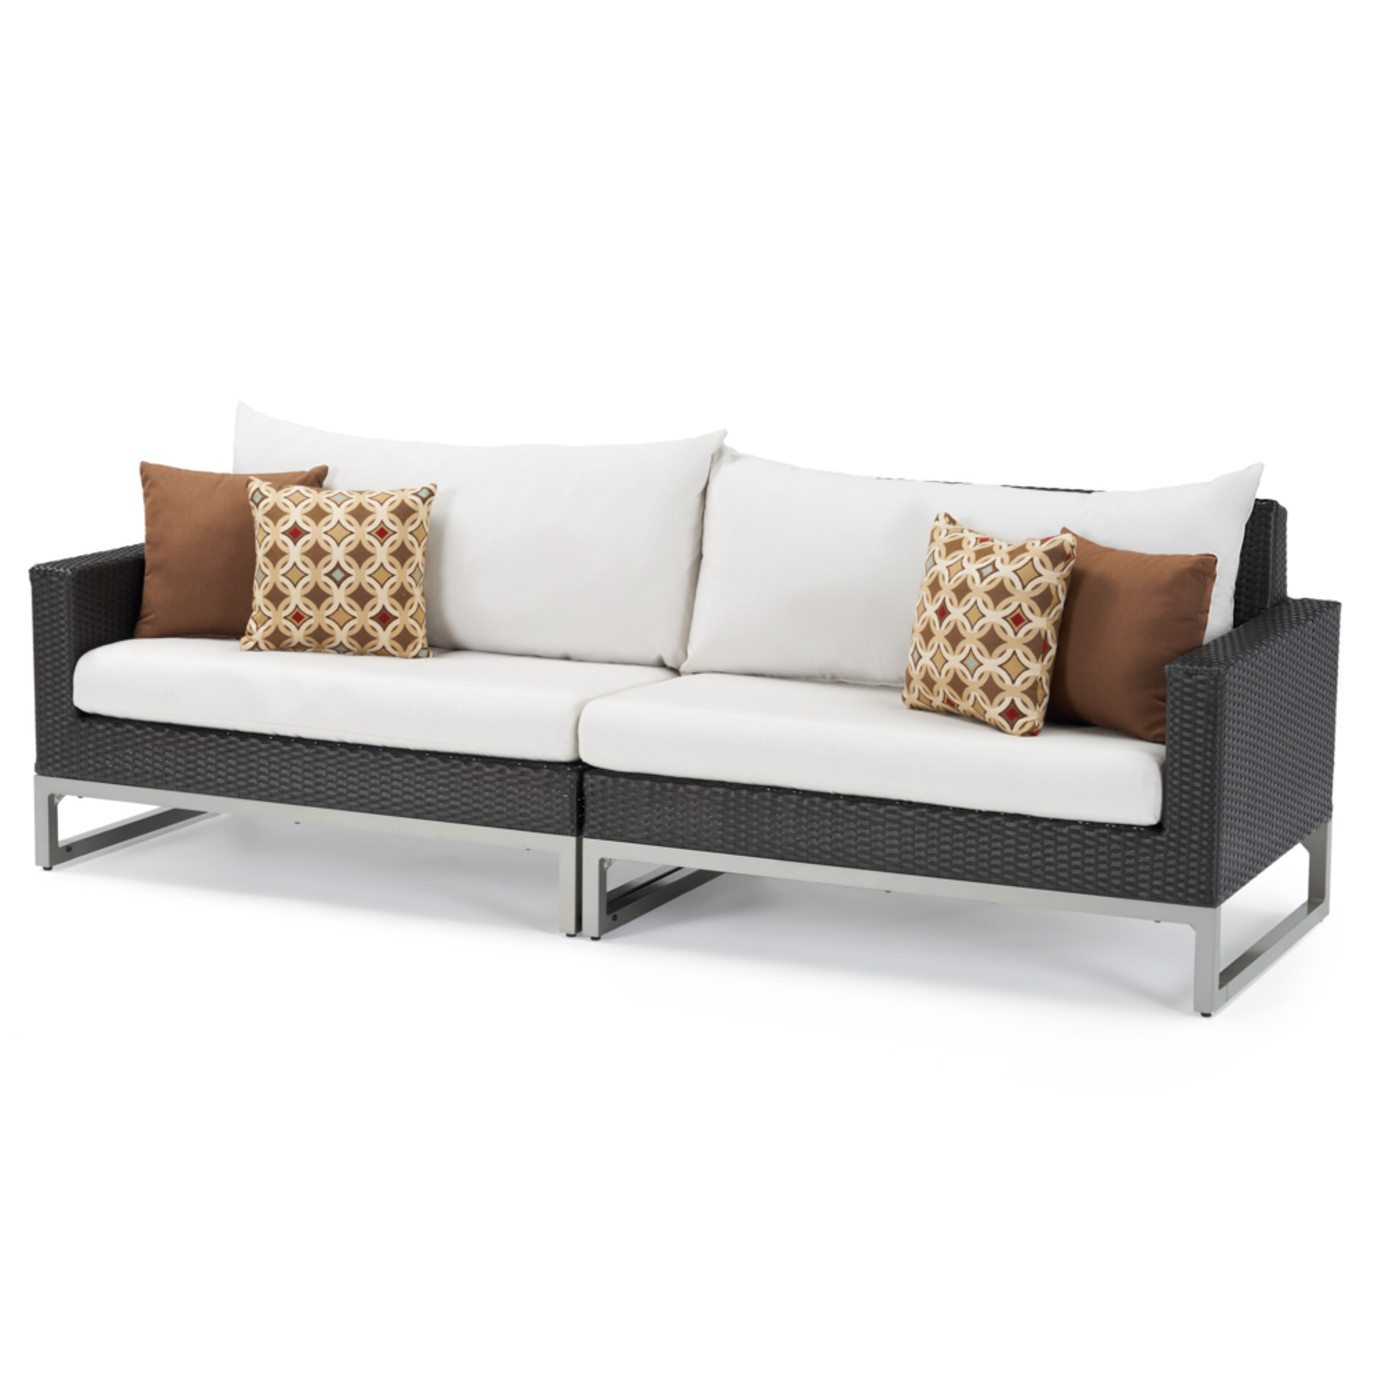 Milo™ Espresso 6 Piece Fire Sectional - Moroccan Cream